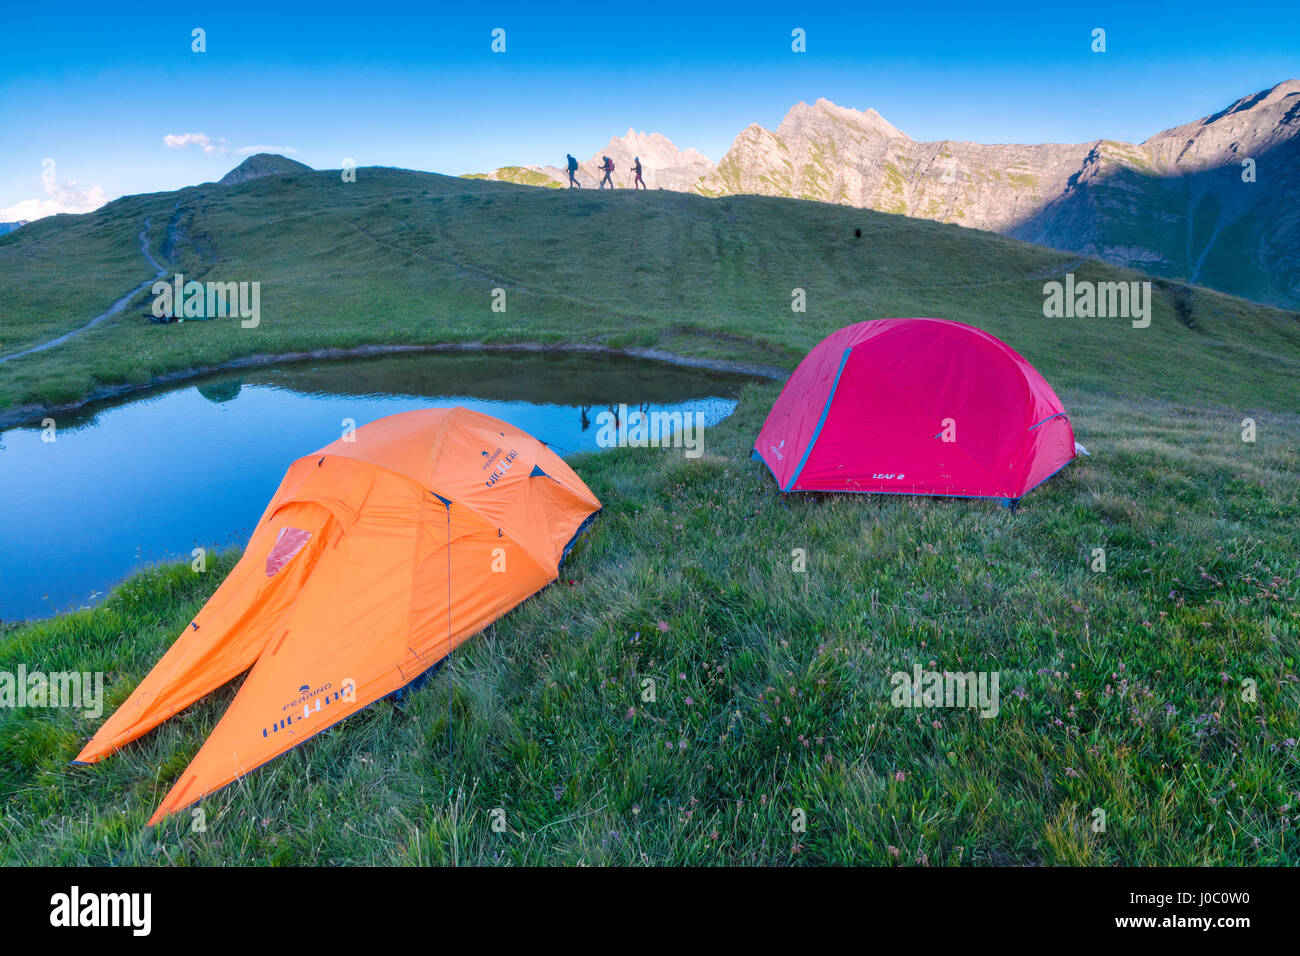 Camping tents and hikers with Mont De La Saxe on the background, Courmayeur, Aosta Valley, Italy - Stock Image